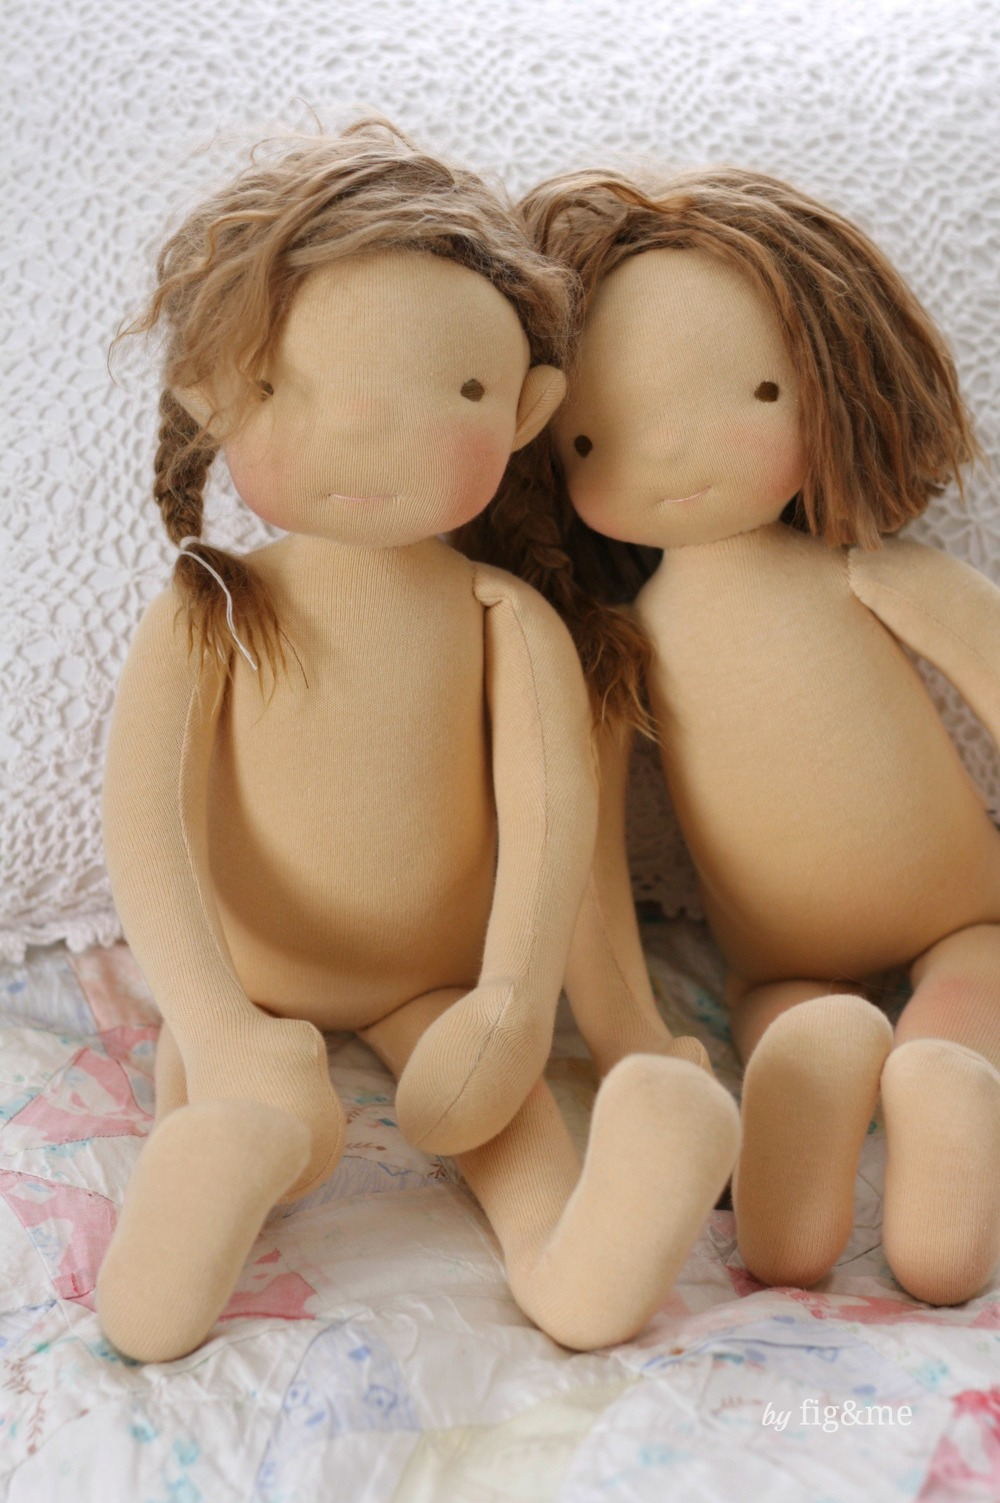 "The little sisters, two 20"" tall figlette custom dolls by Fig and Me."